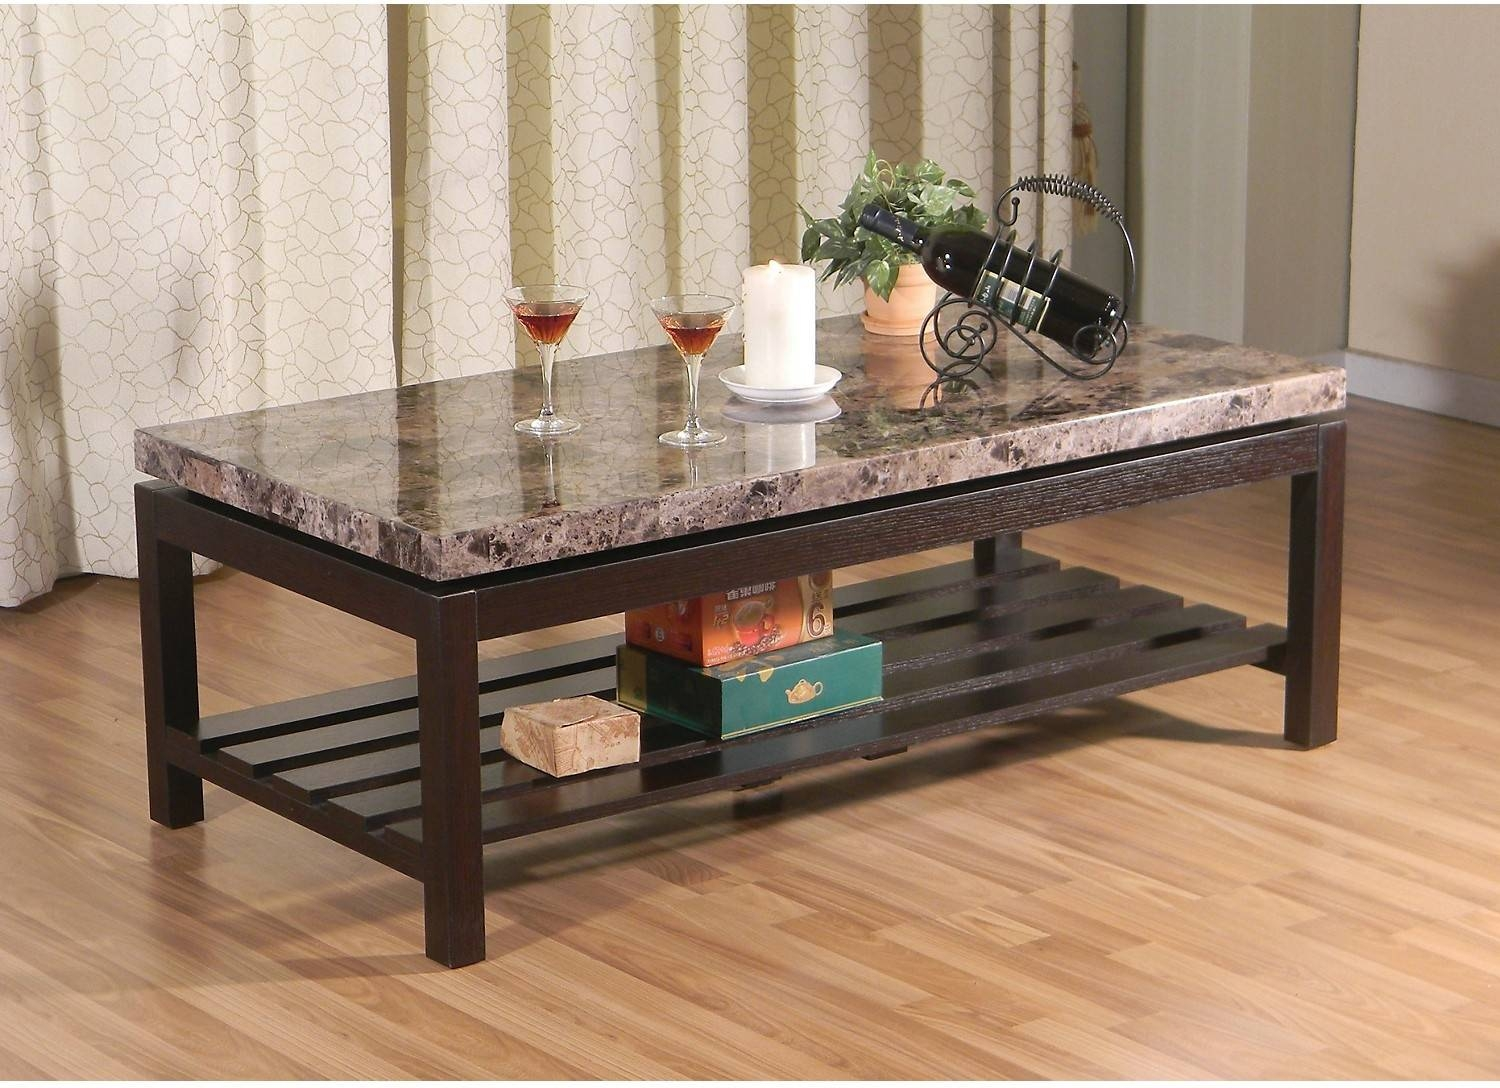 Verona Coffee Table | The Brick for Verona Coffee Tables (Image 24 of 30)